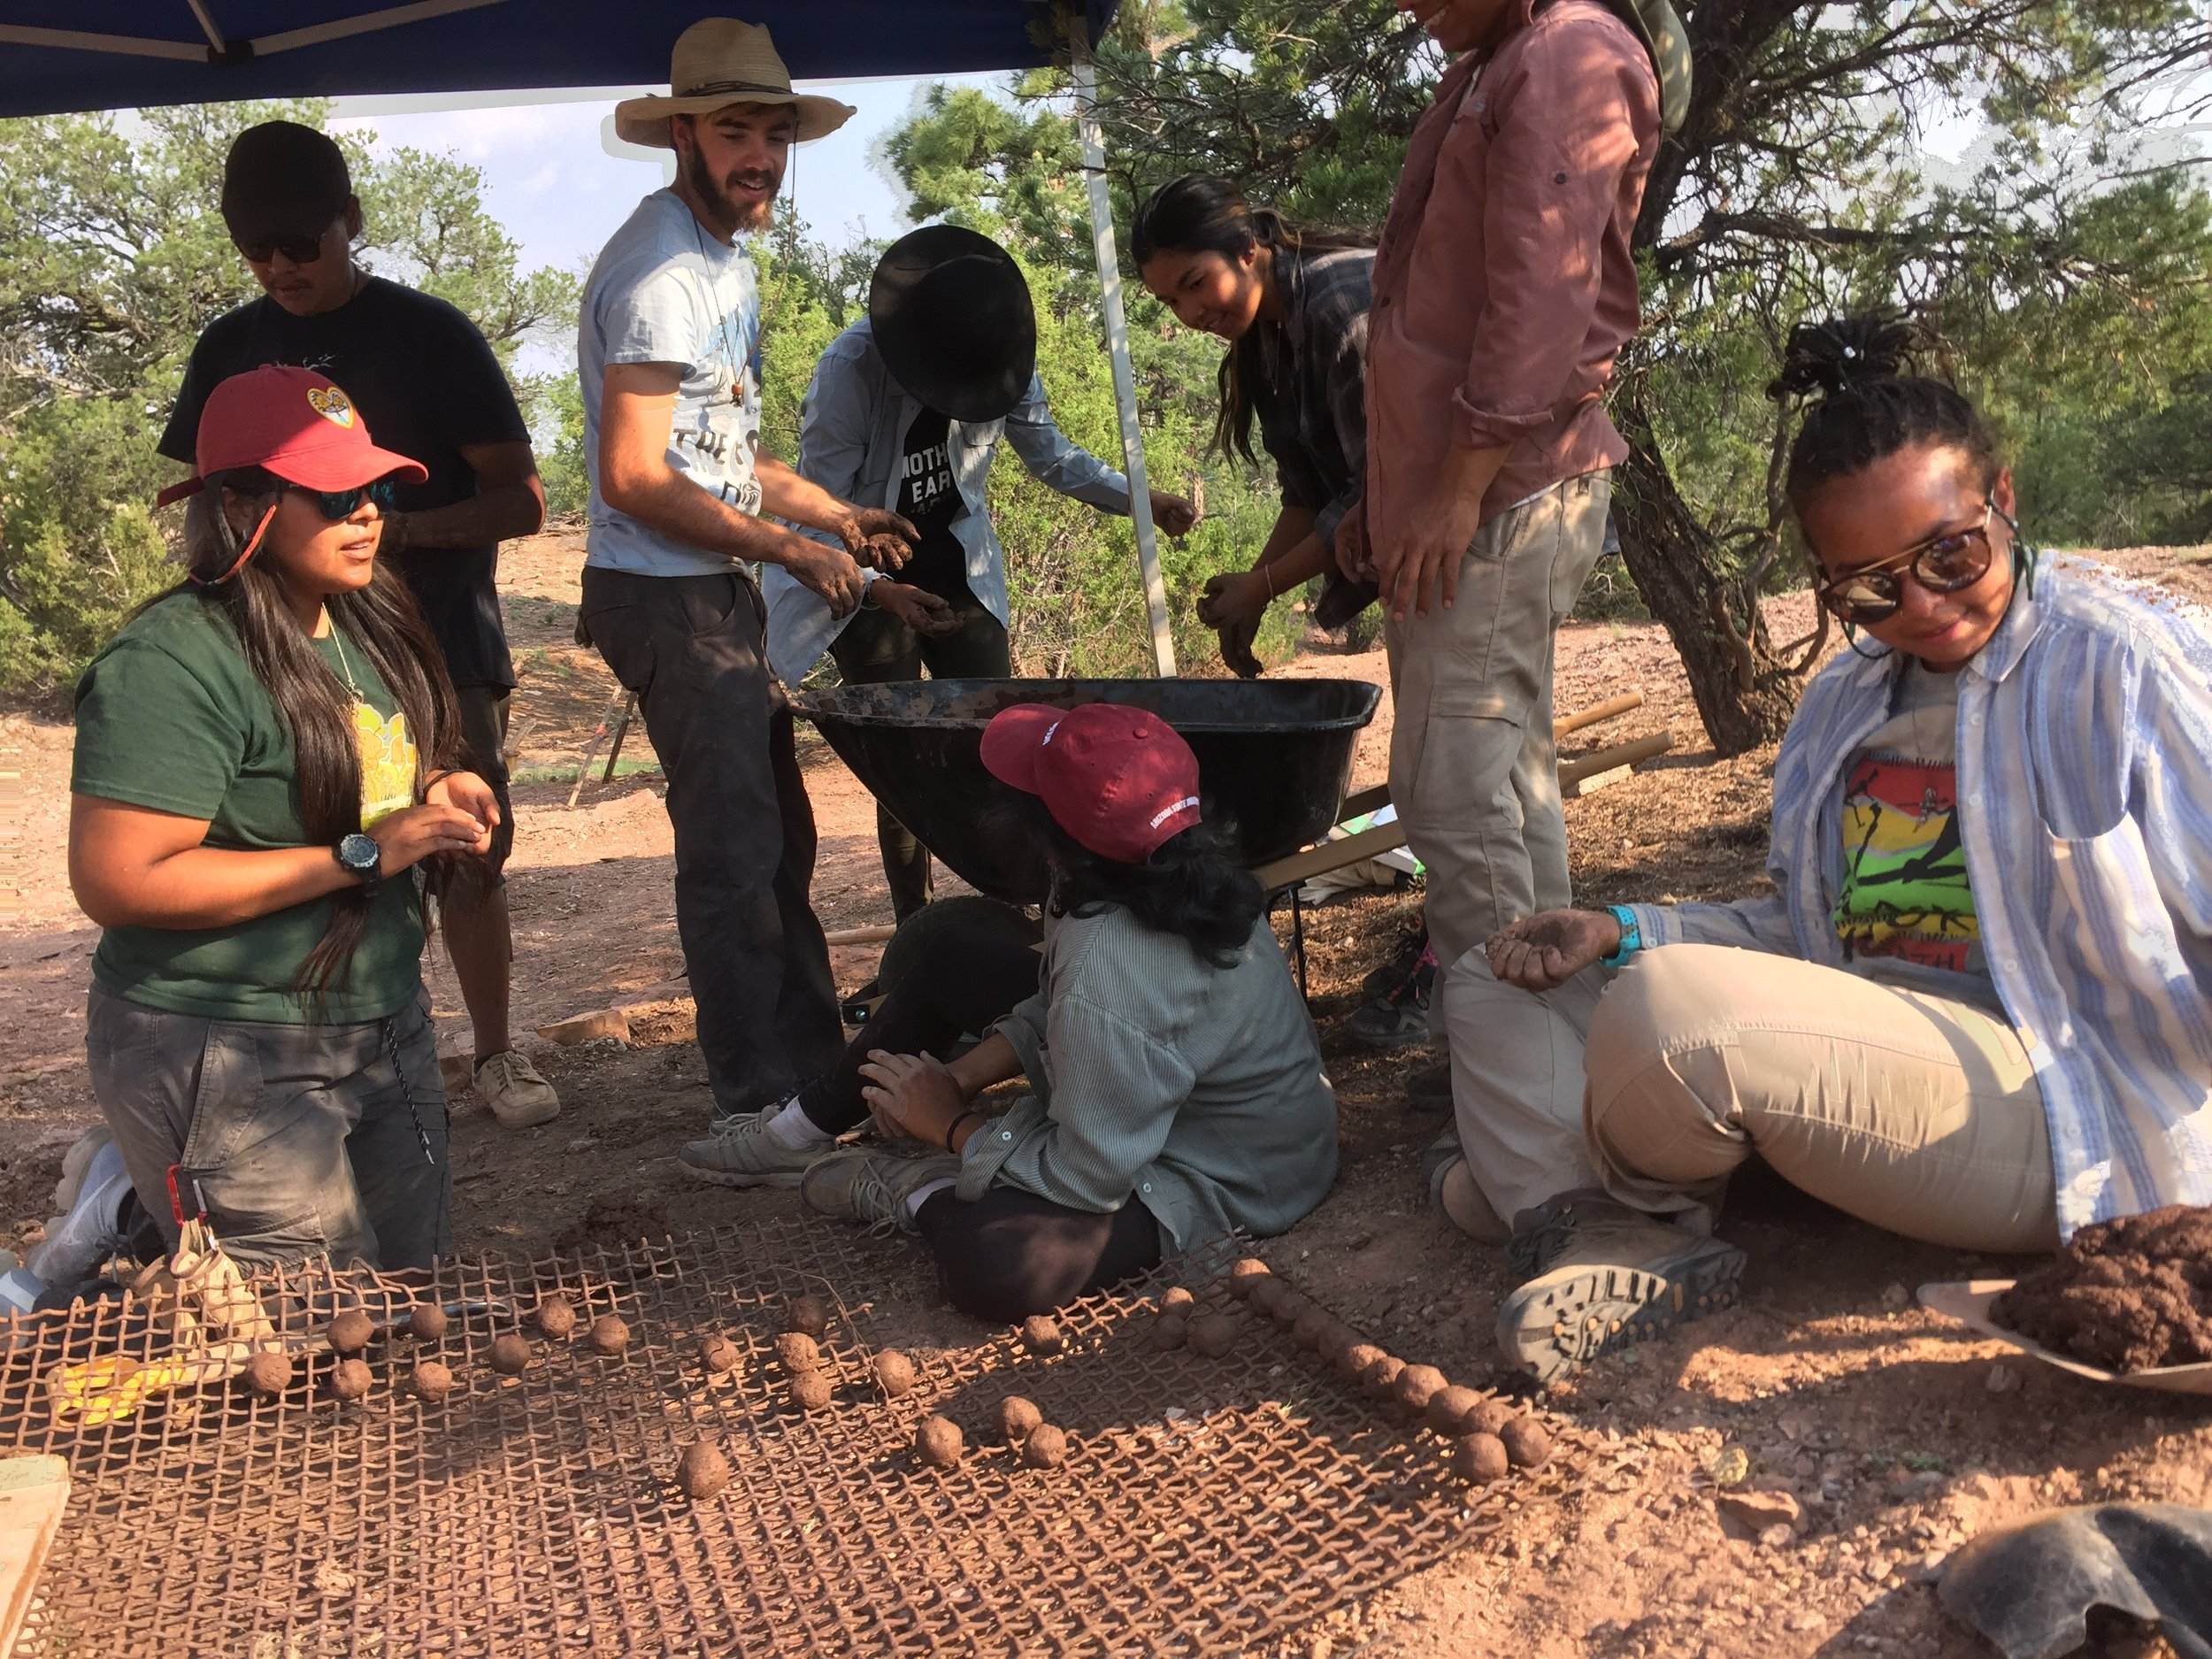 Doris Duke Scholars came thru with the medicine and helped us make hundreds of seed balls. They also helped make contour dams.